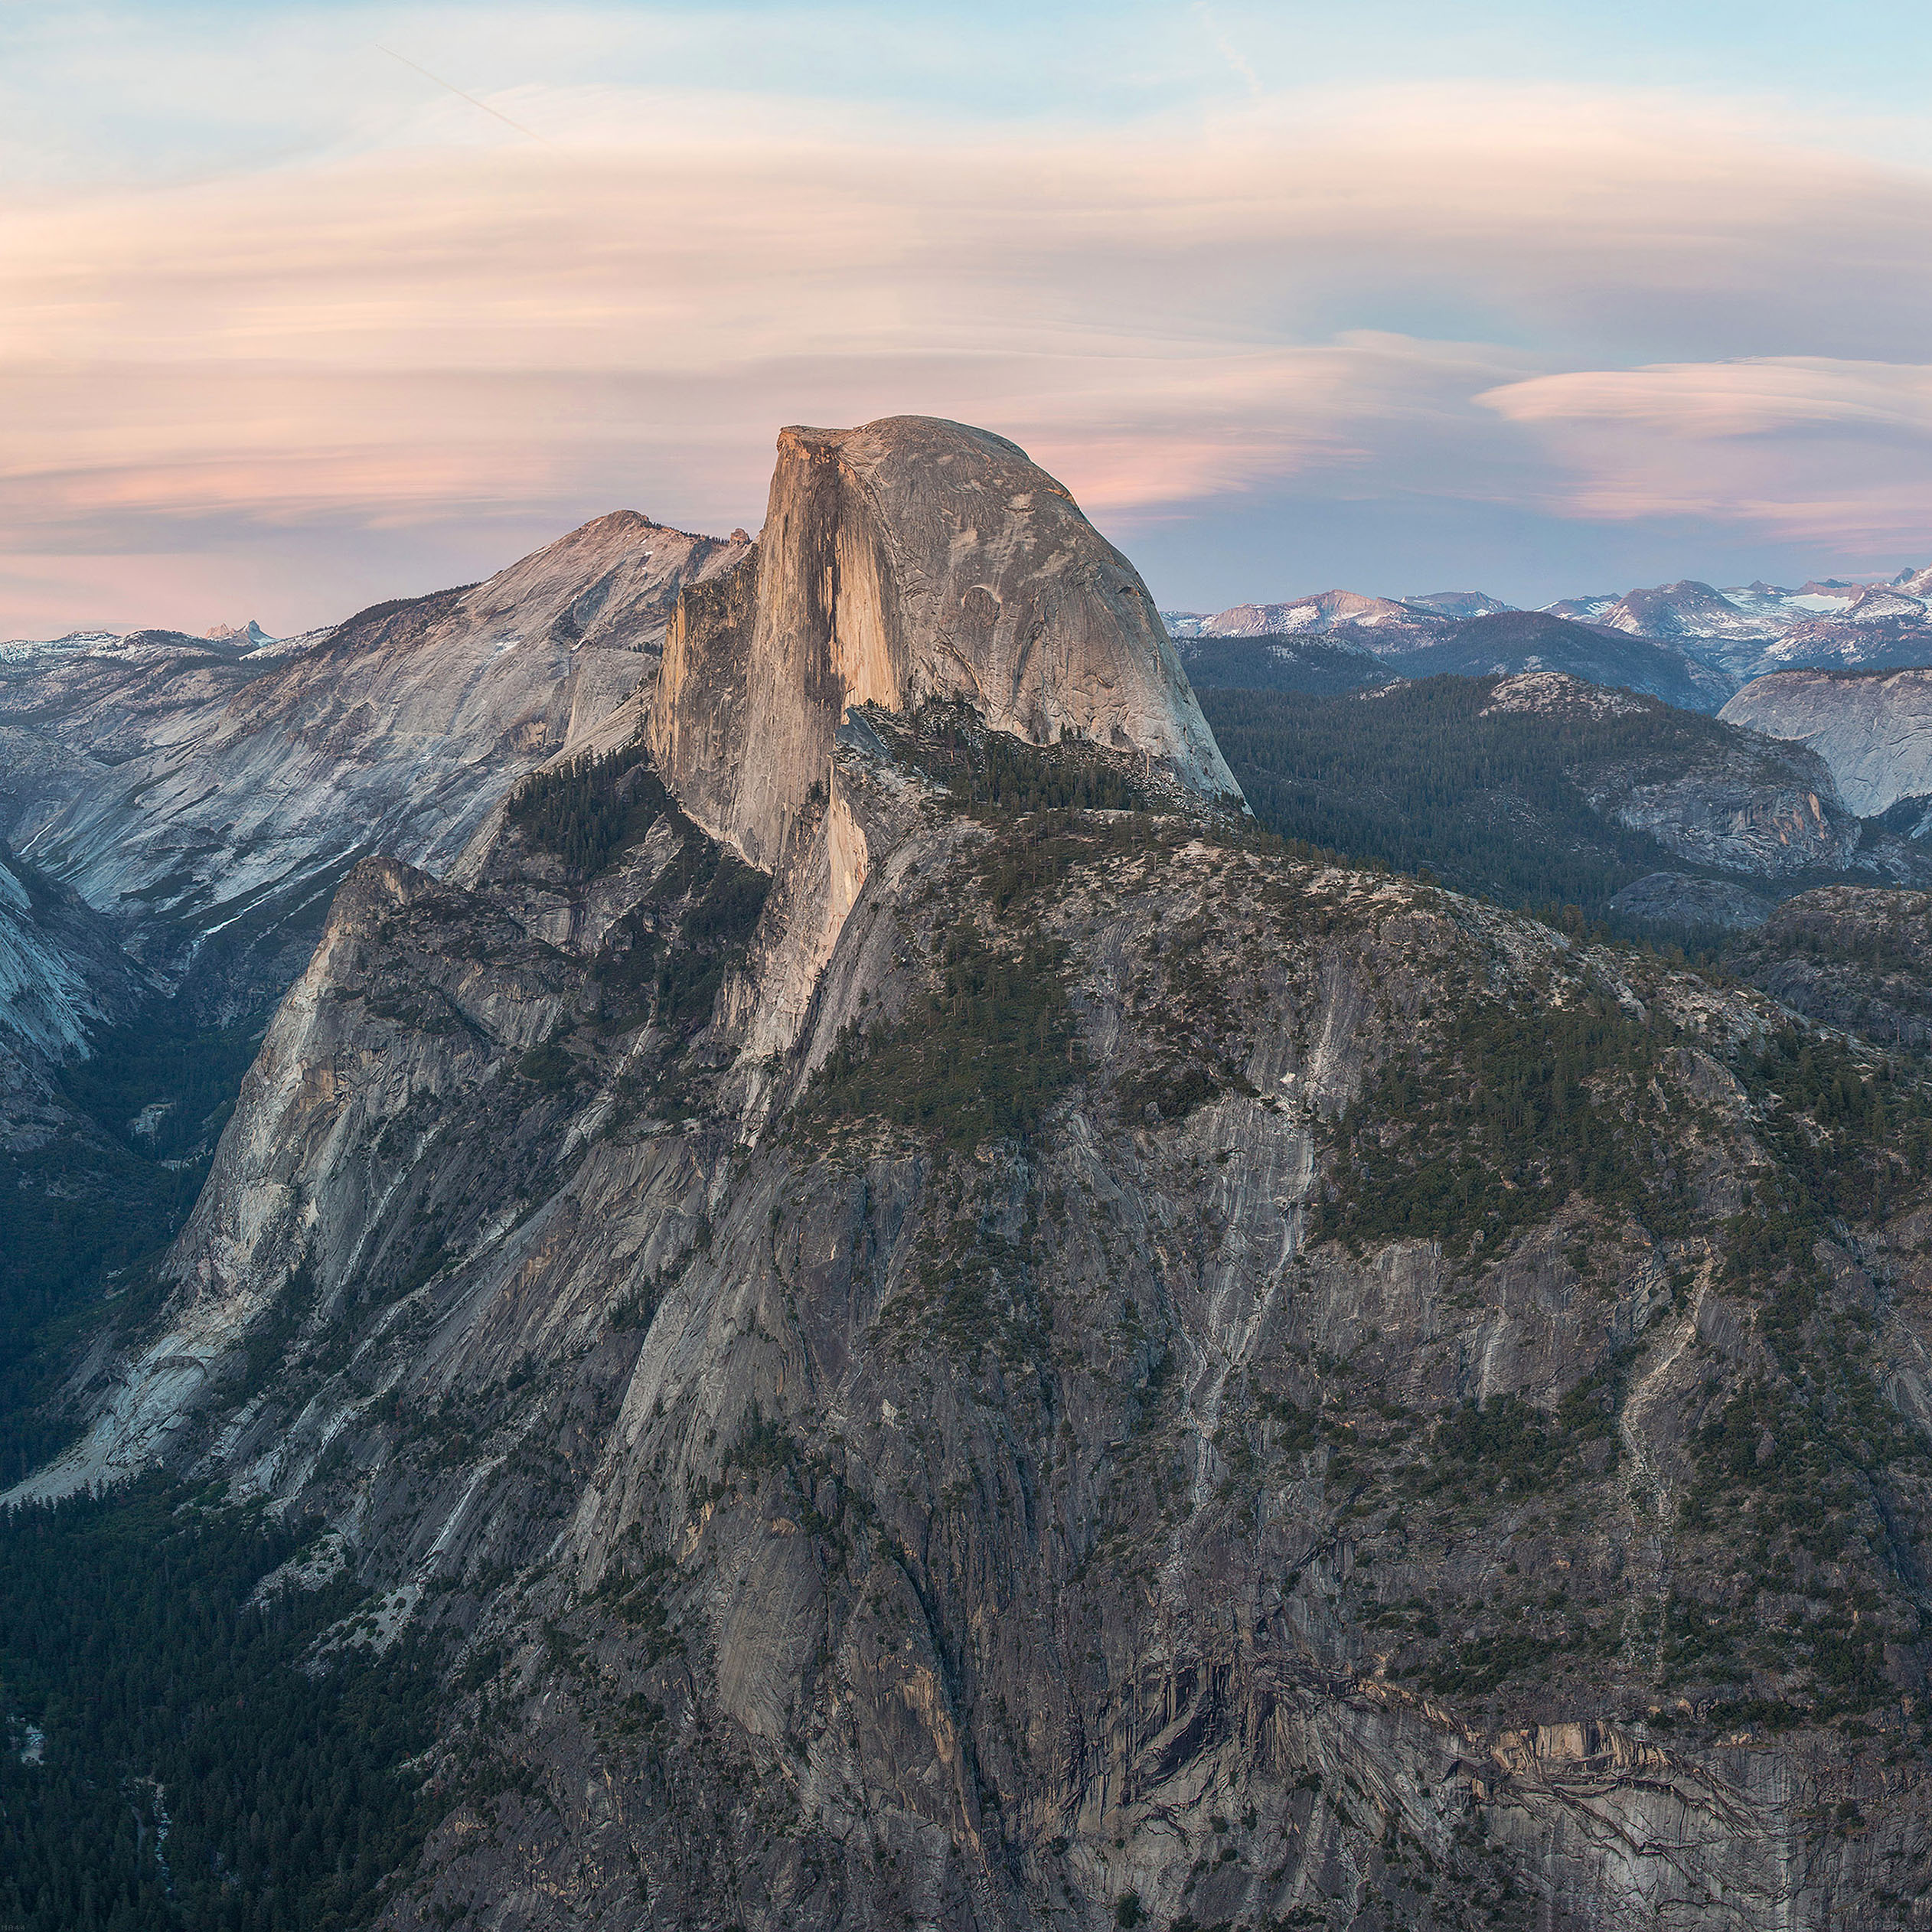 3d Hd Wallpapers Pack Free Download Yosemite National Park Wallpapers For Iphone And Ipad